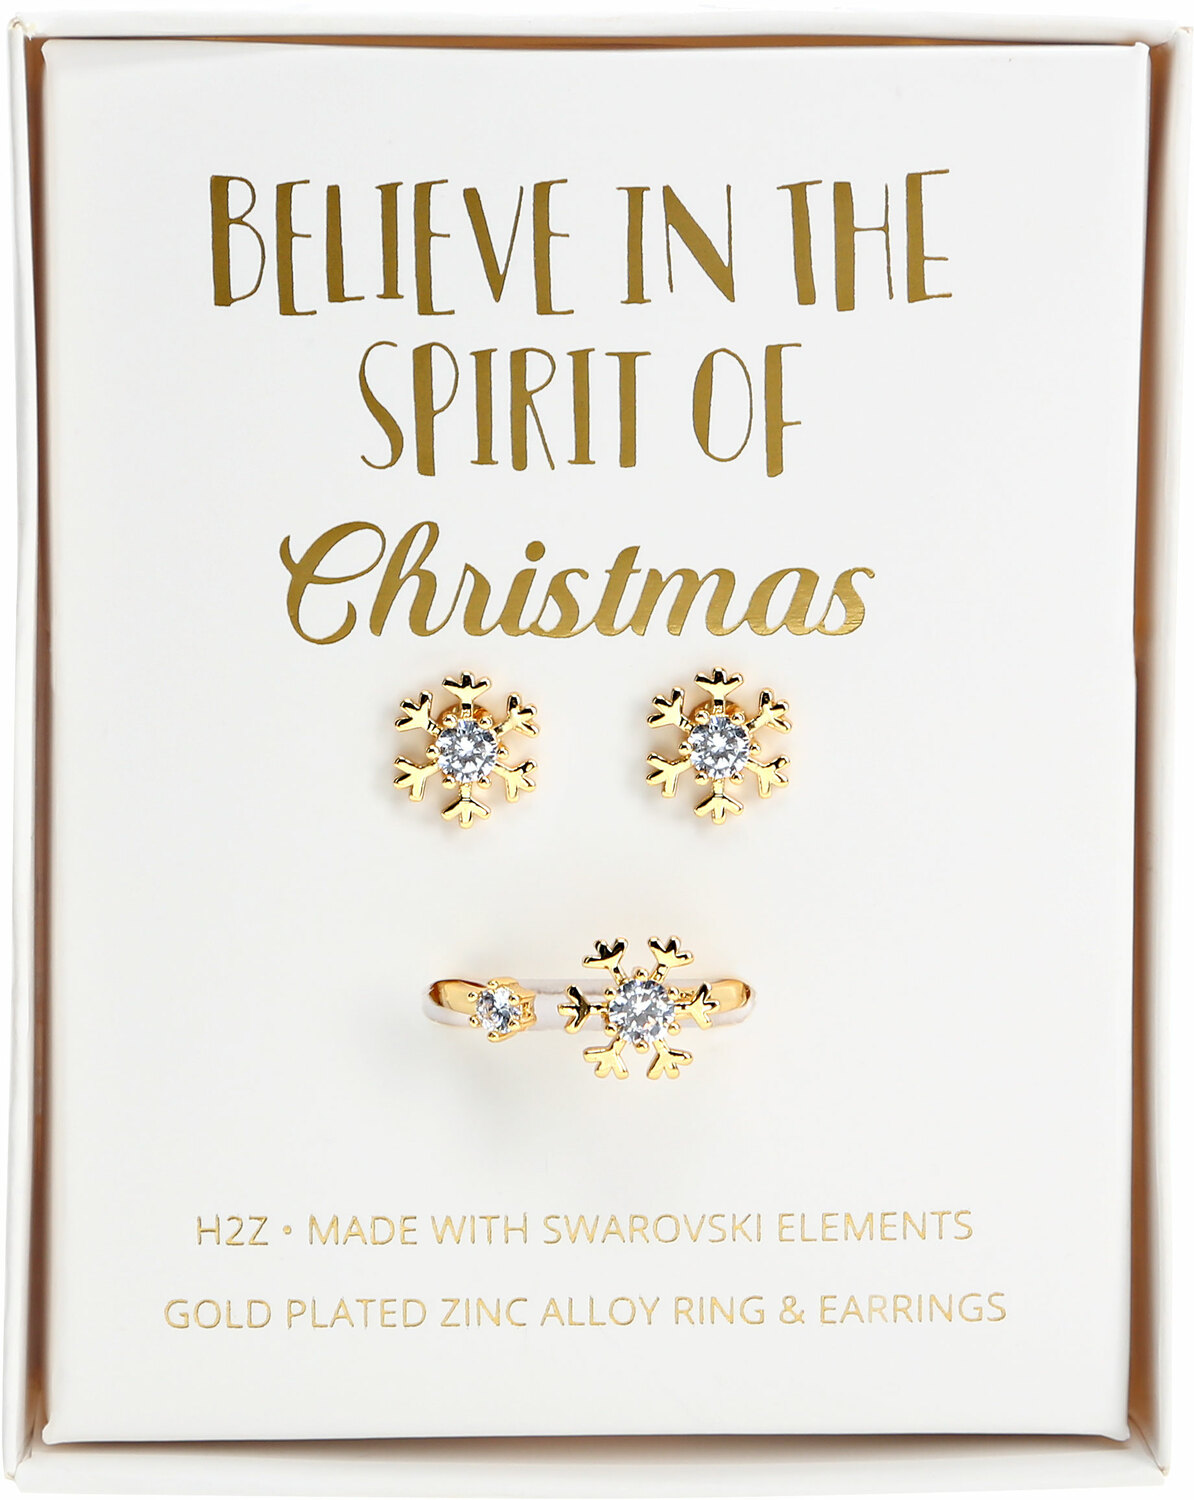 Crystal Snowflake in Gold by H2Z Made with Swarovski Elements - Crystal Snowflake in Gold - 1 CM Swarovski Crystal Stud Earrings & Adjustable Ring